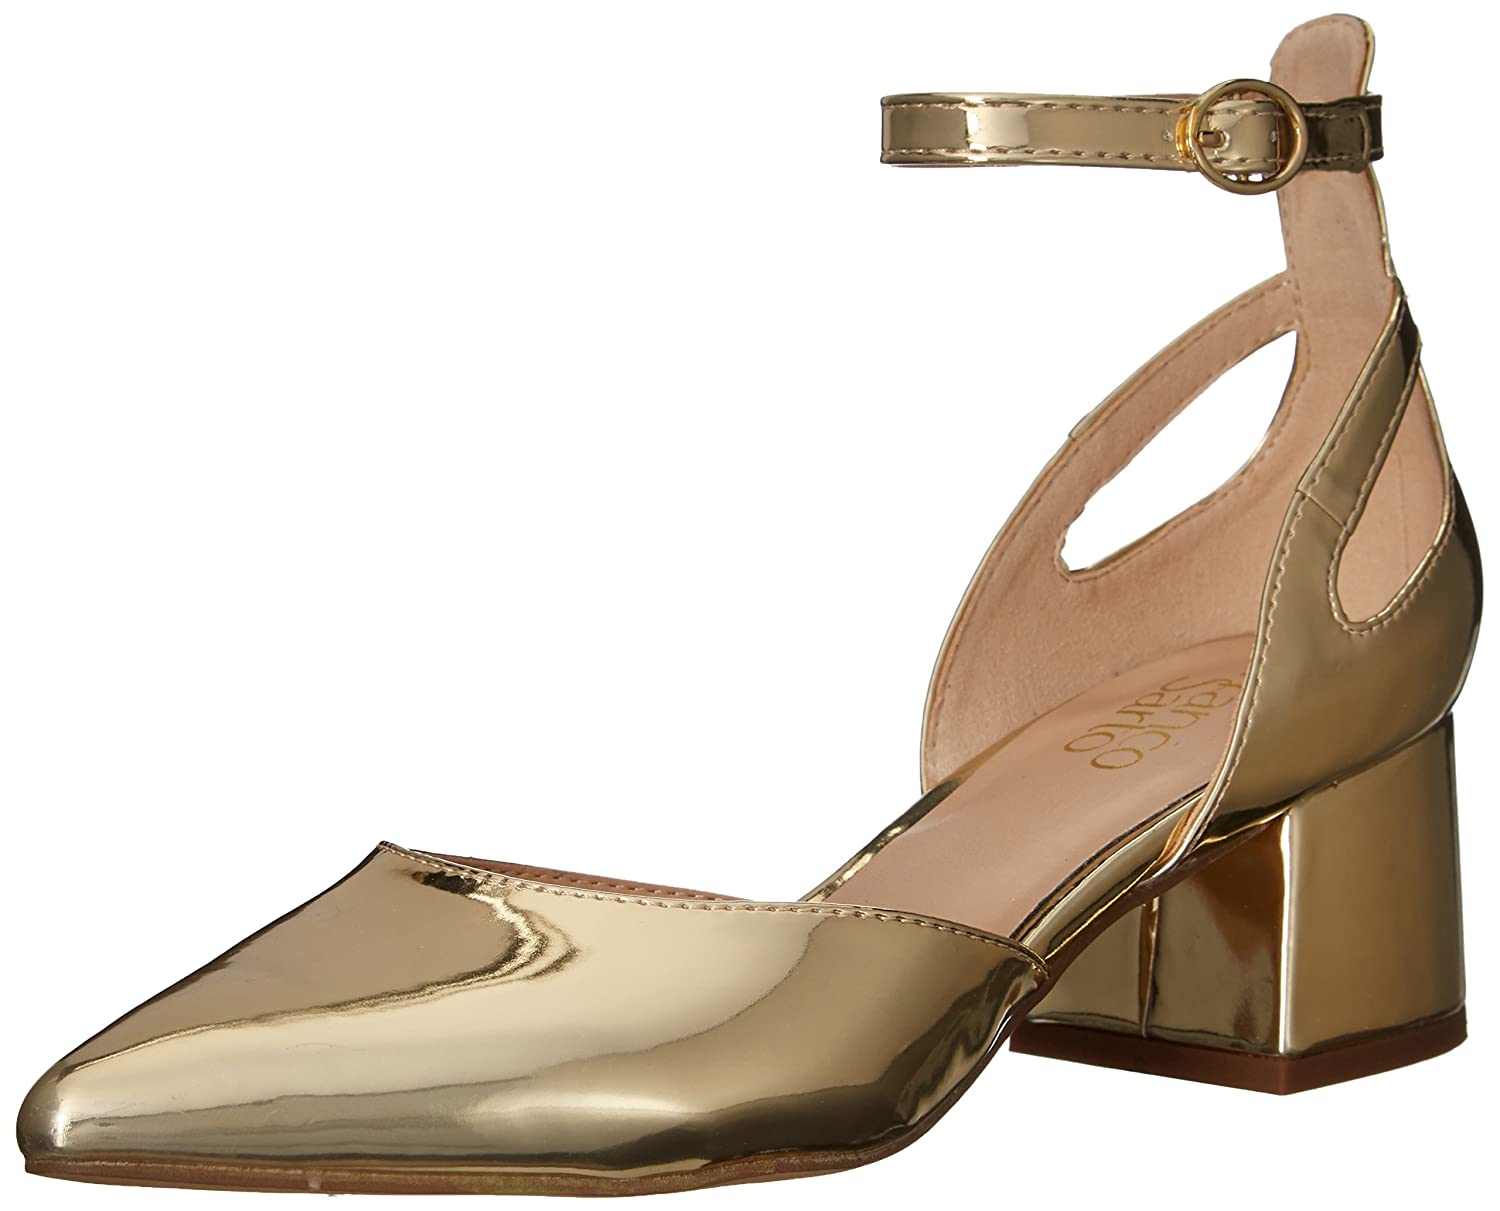 Franco Sarto Women's Caleigh Pump B06XSKY8MJ 9 B(M) US|Gold